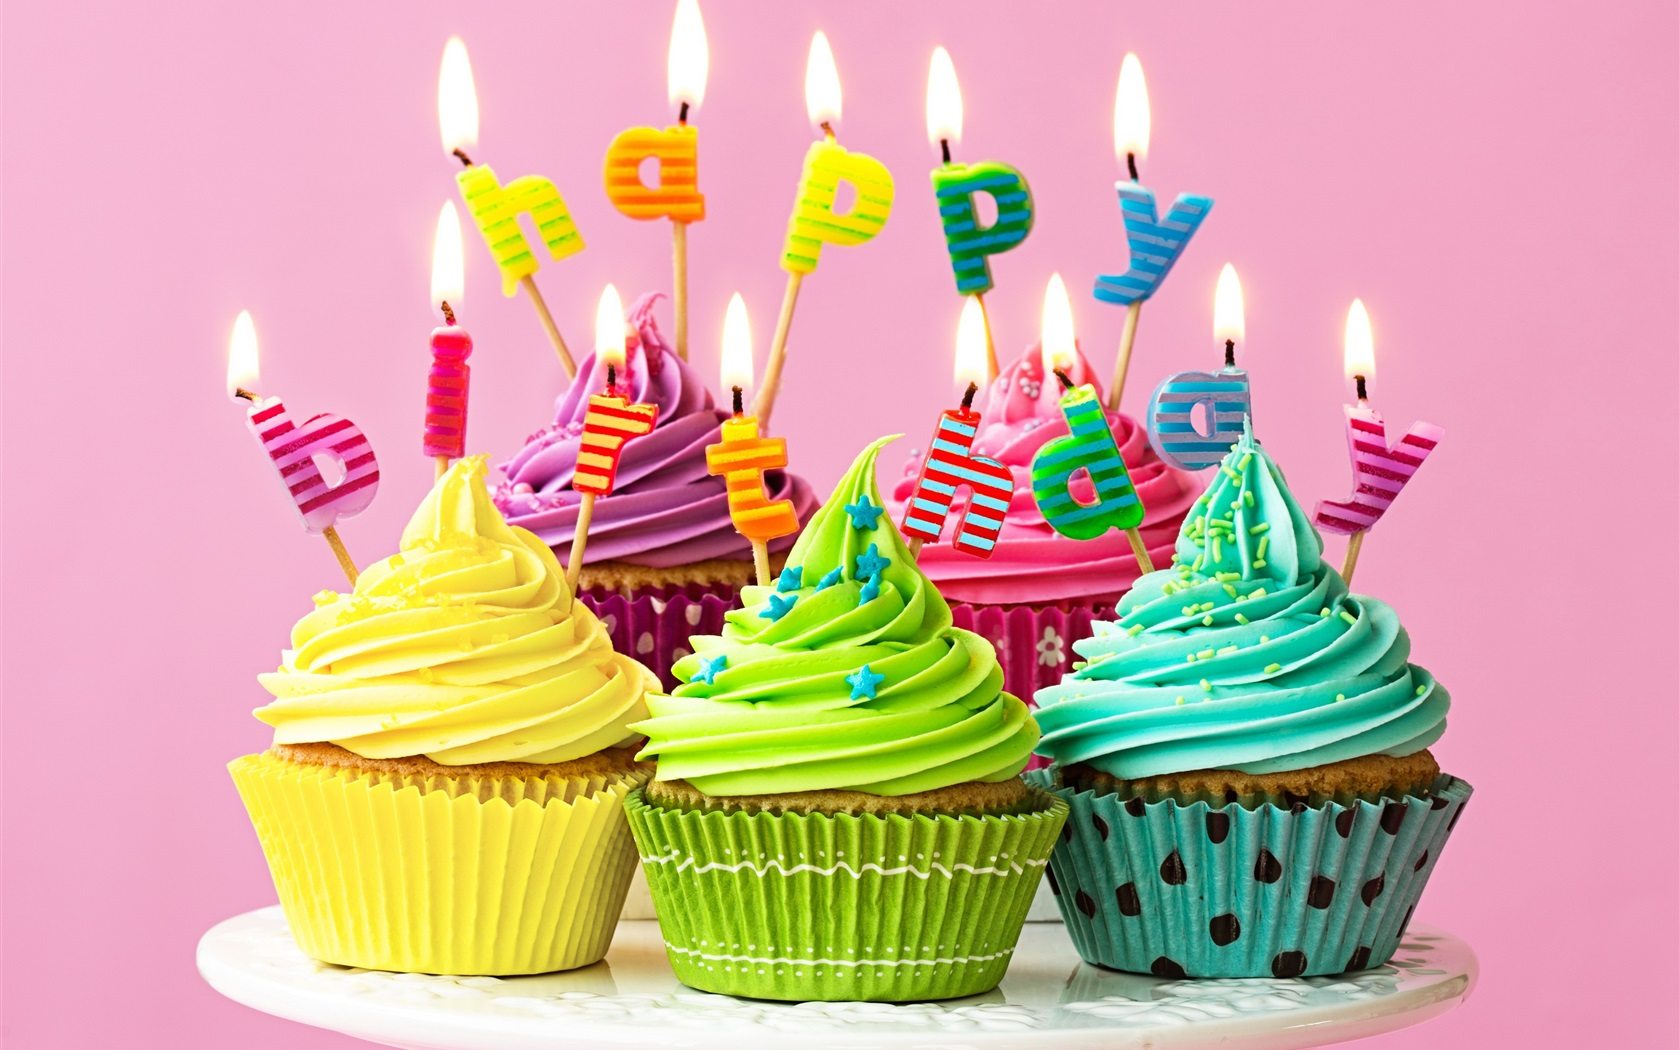 wallpaper happy birthday candles fire colorful cupcakes 3840x2160 uhd 4k picture image. Black Bedroom Furniture Sets. Home Design Ideas